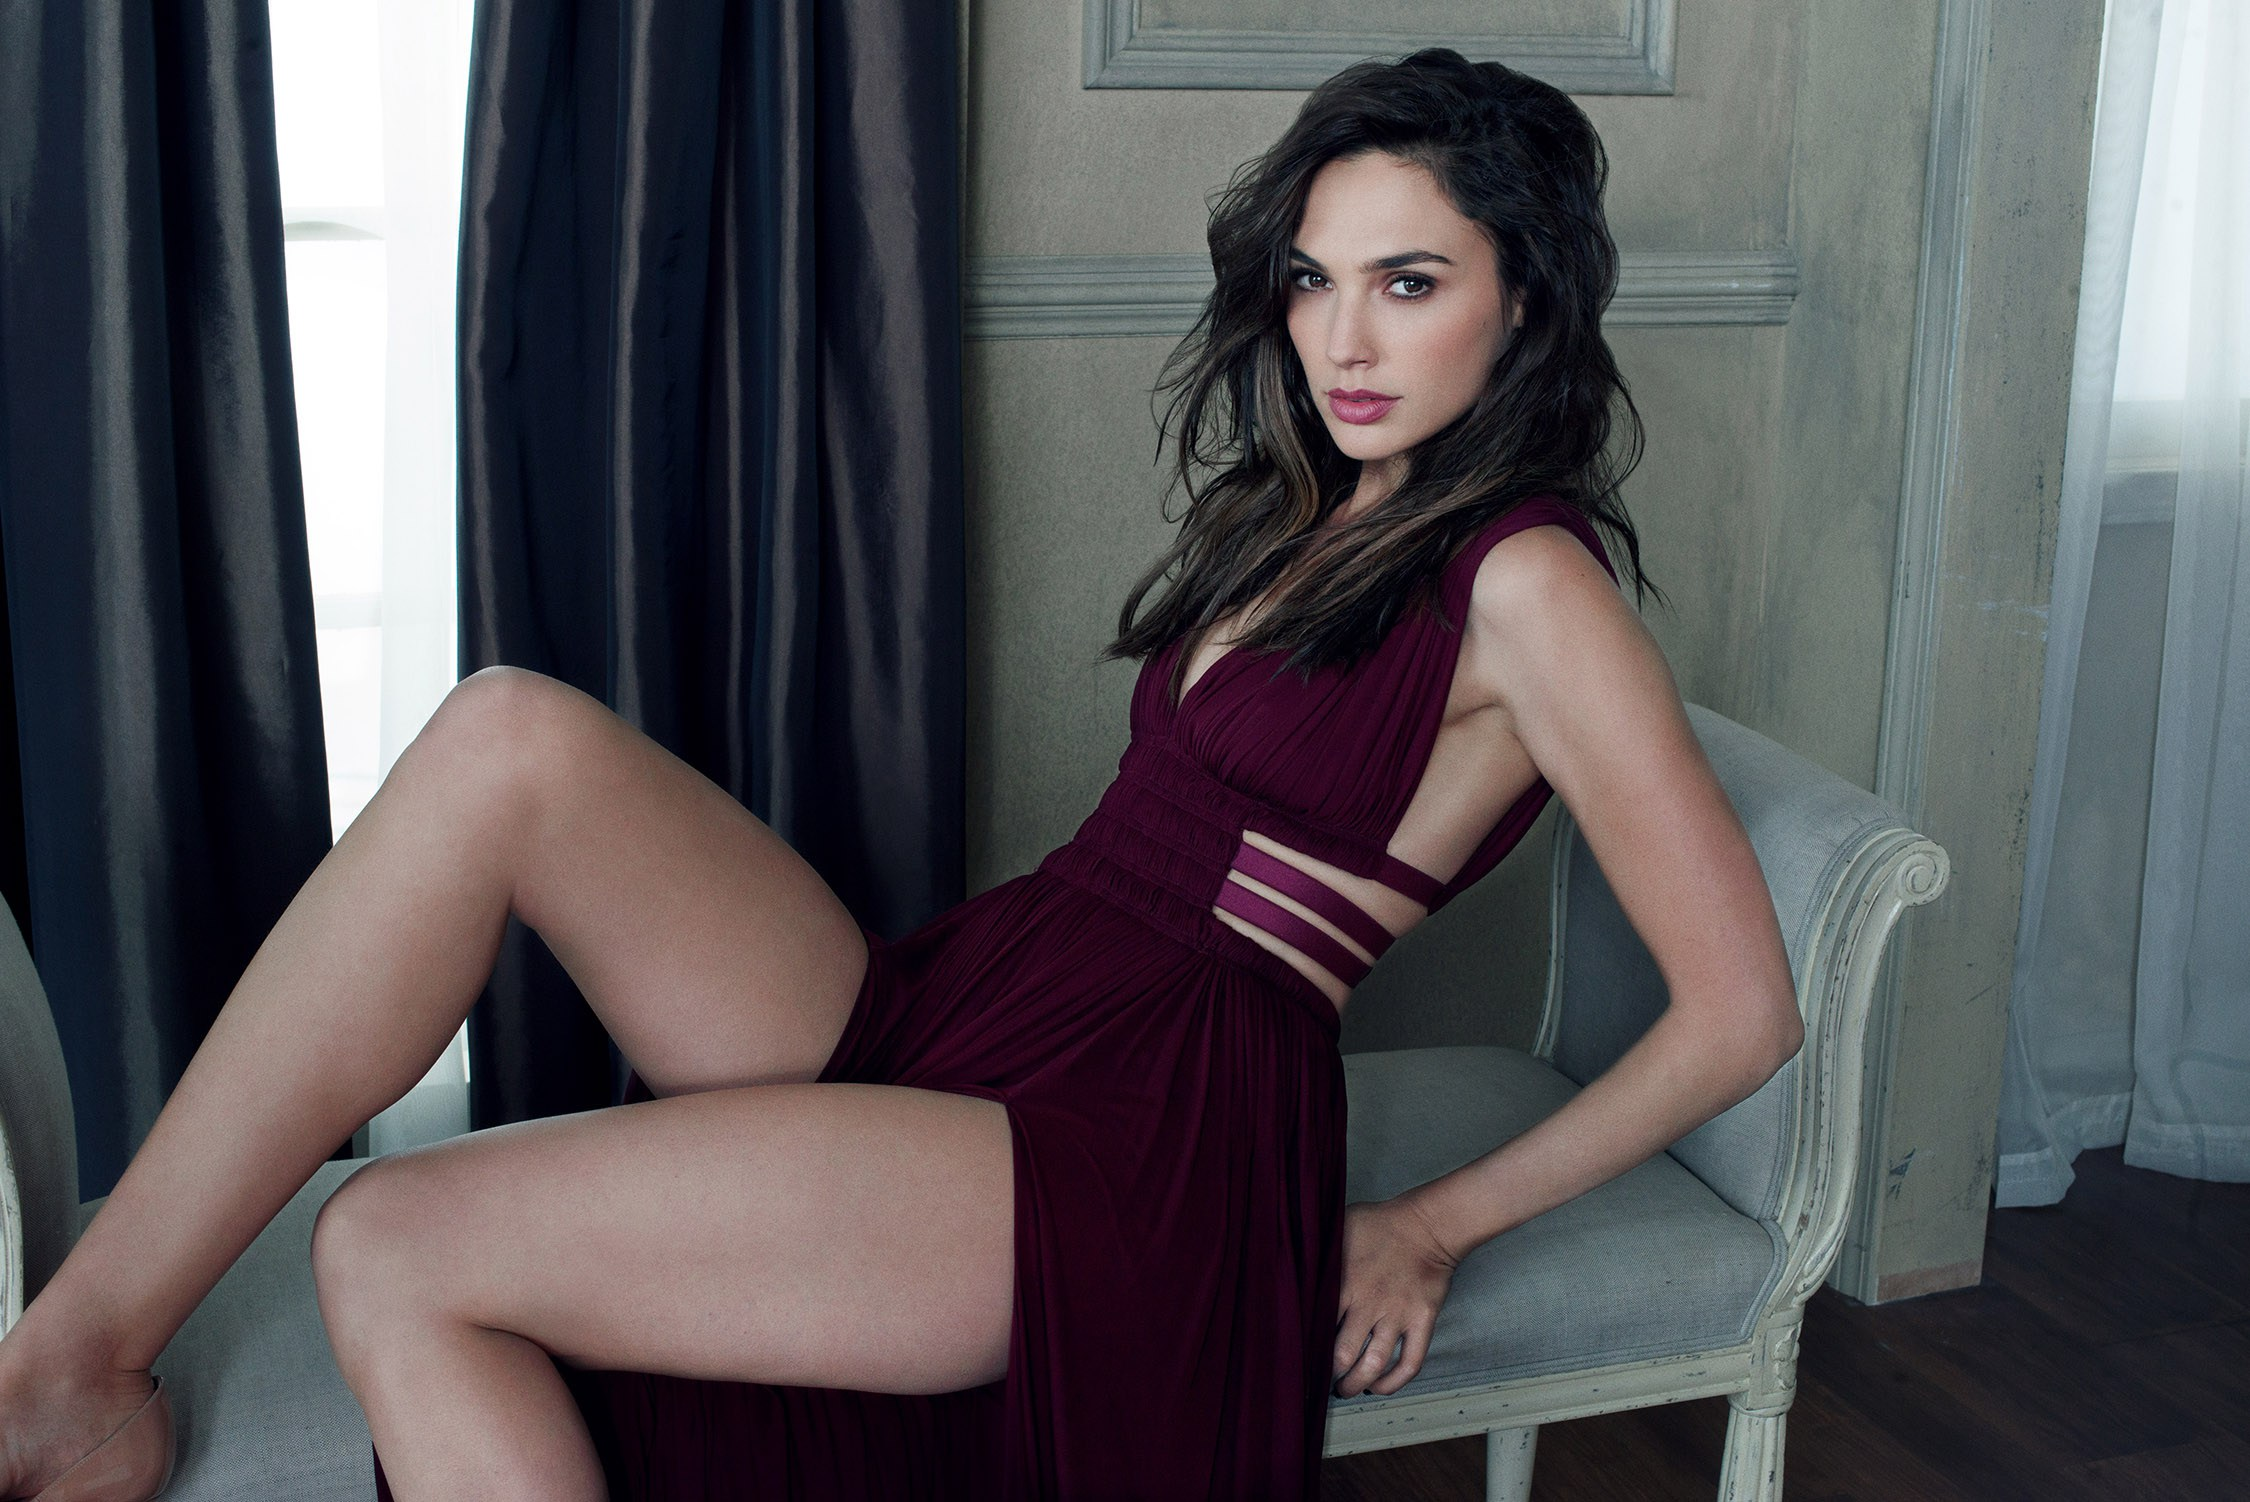 gal gadot - photo #14